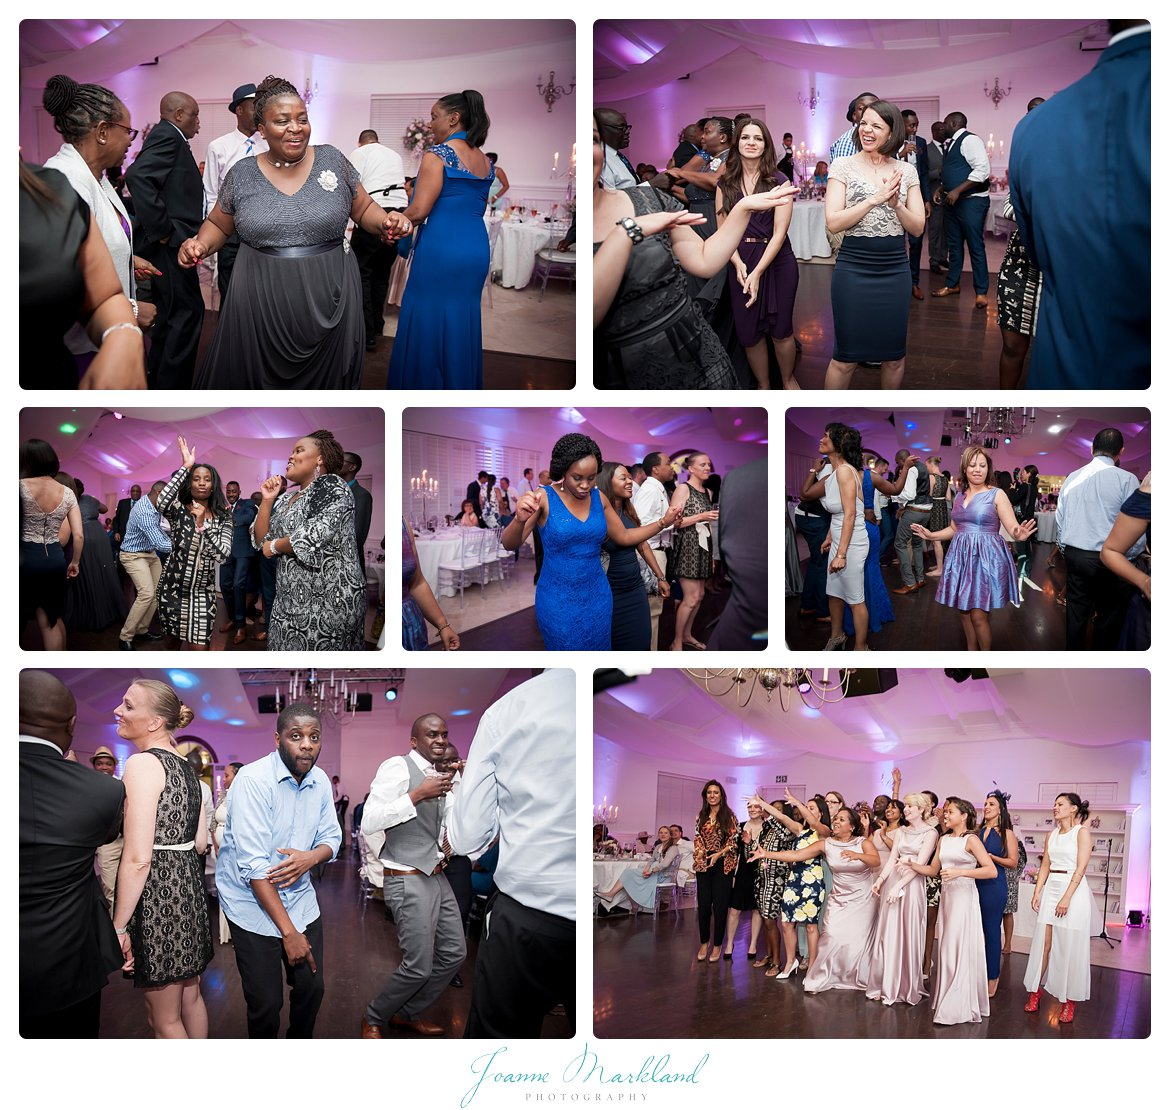 Val_de_vie_wedding_joanne_markland_photography_paarl-059